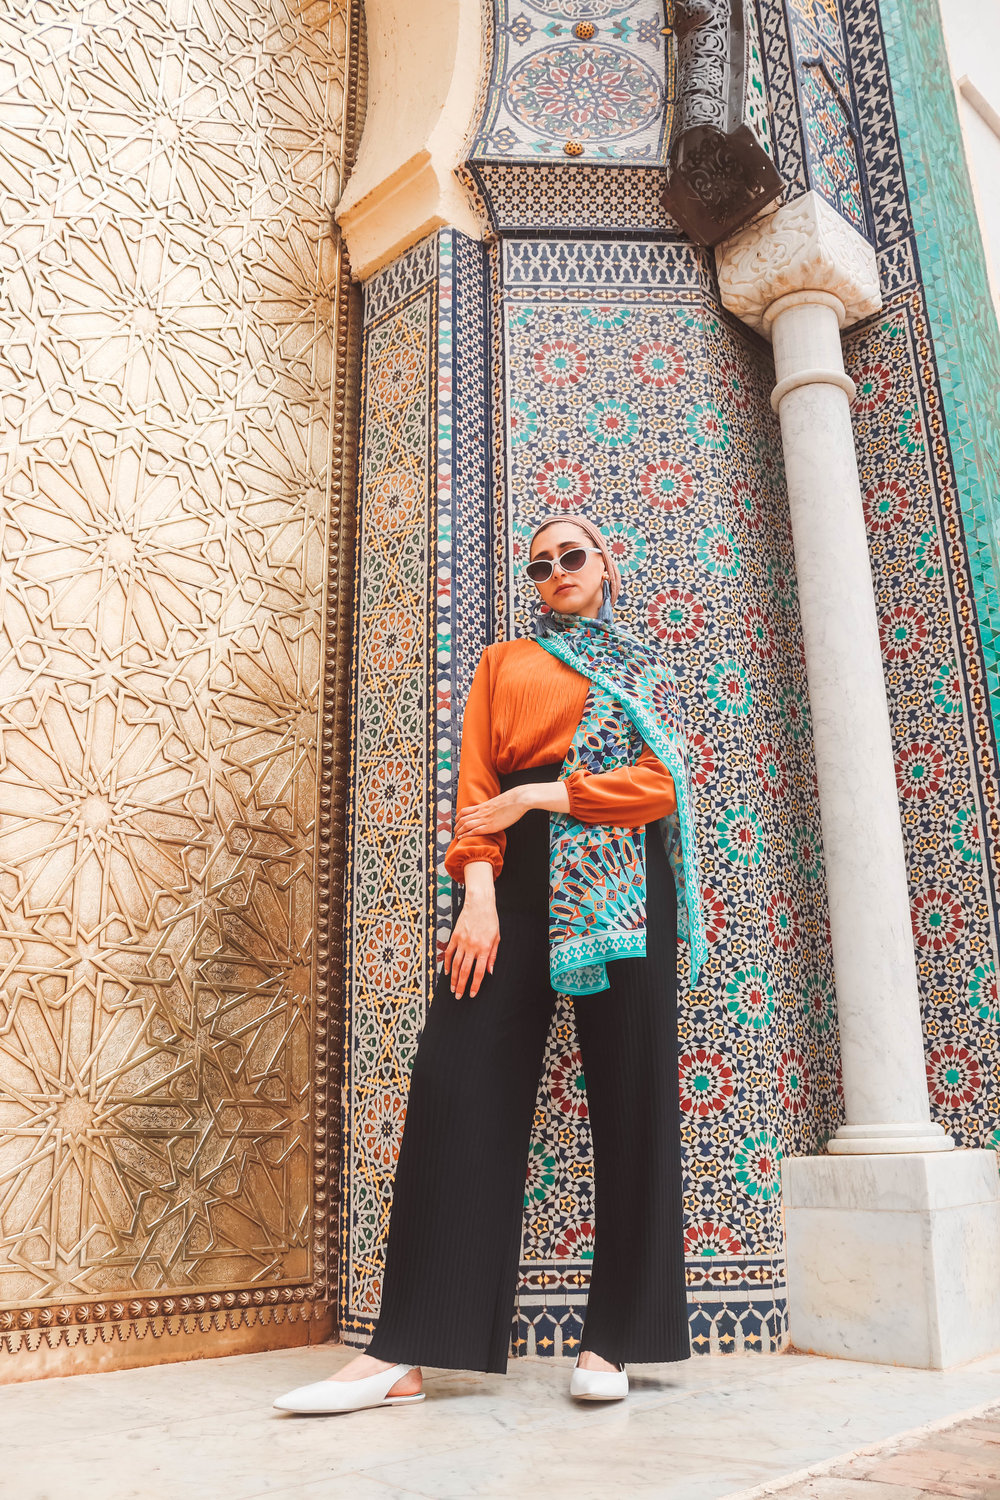 fez-morocco what to wear in morocco , morocco outfits karama by hoda